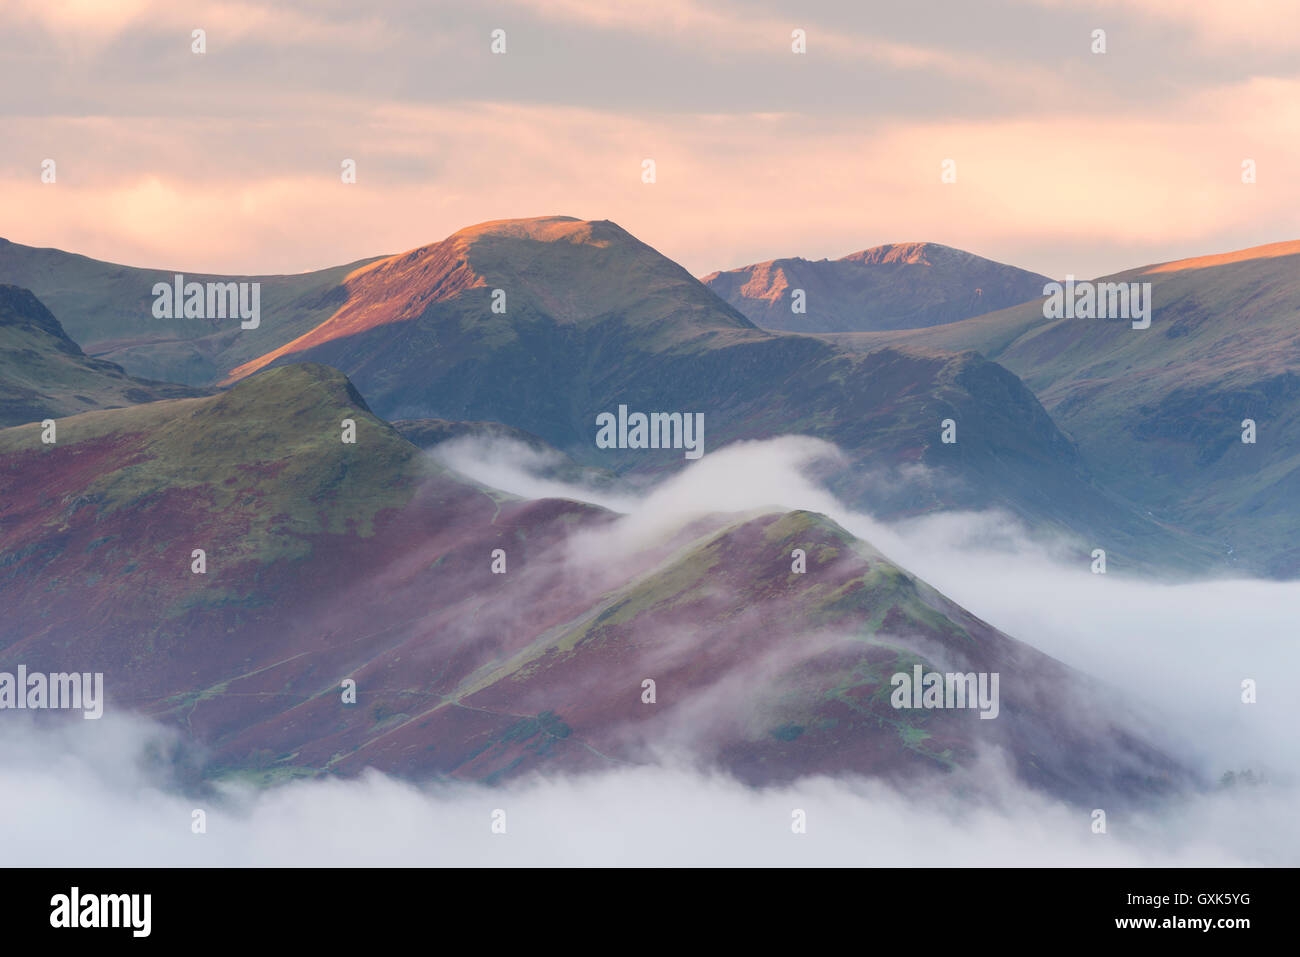 Catbells mountain surrounded by morning mist, Lake District National Park, Cumbria, England. Autumn (November) 2014. - Stock Image